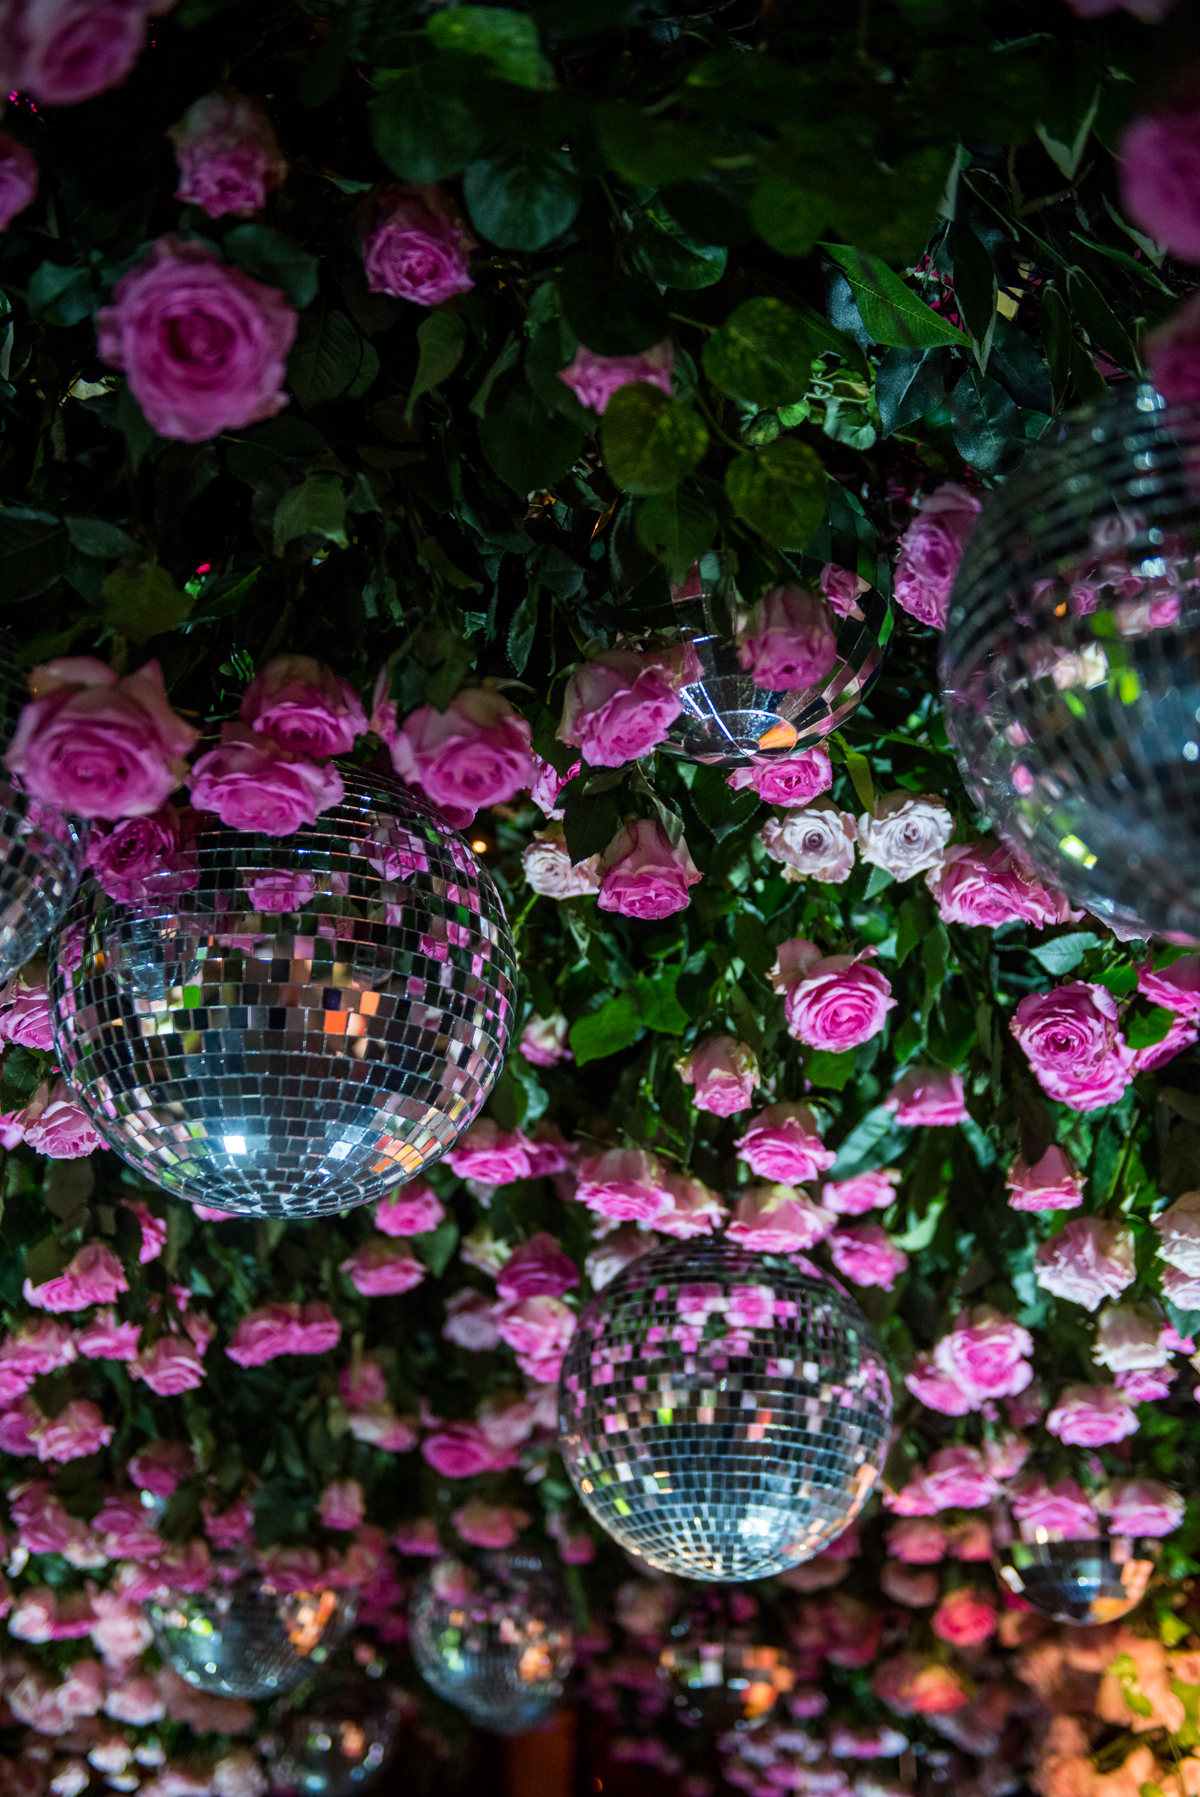 PrettyLittleThing PLT X Kourtney Kardashian Collection Celebrity Launch Party disco balls and roses.jpg